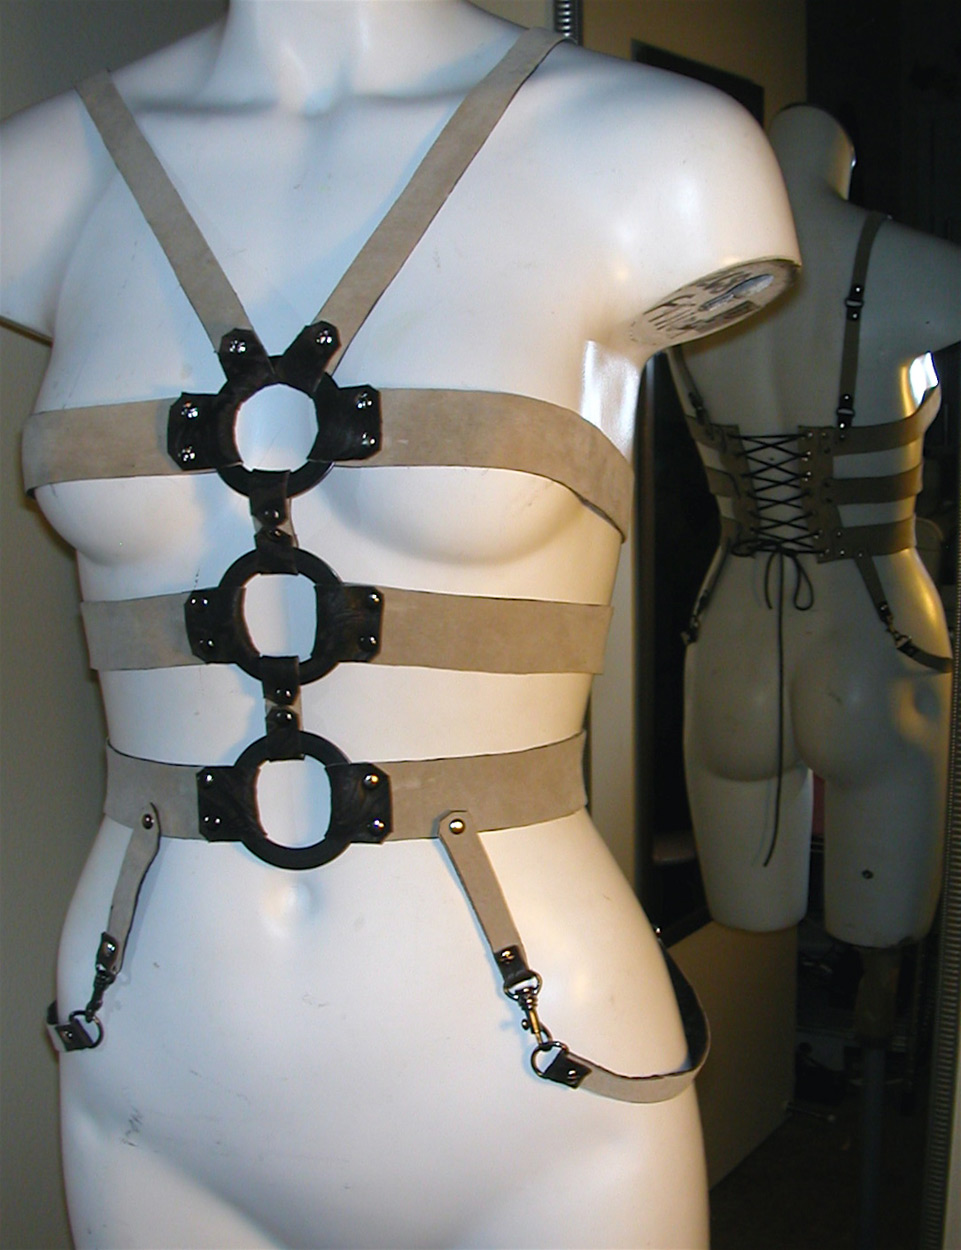 leather-harness-LS2-007.jpg